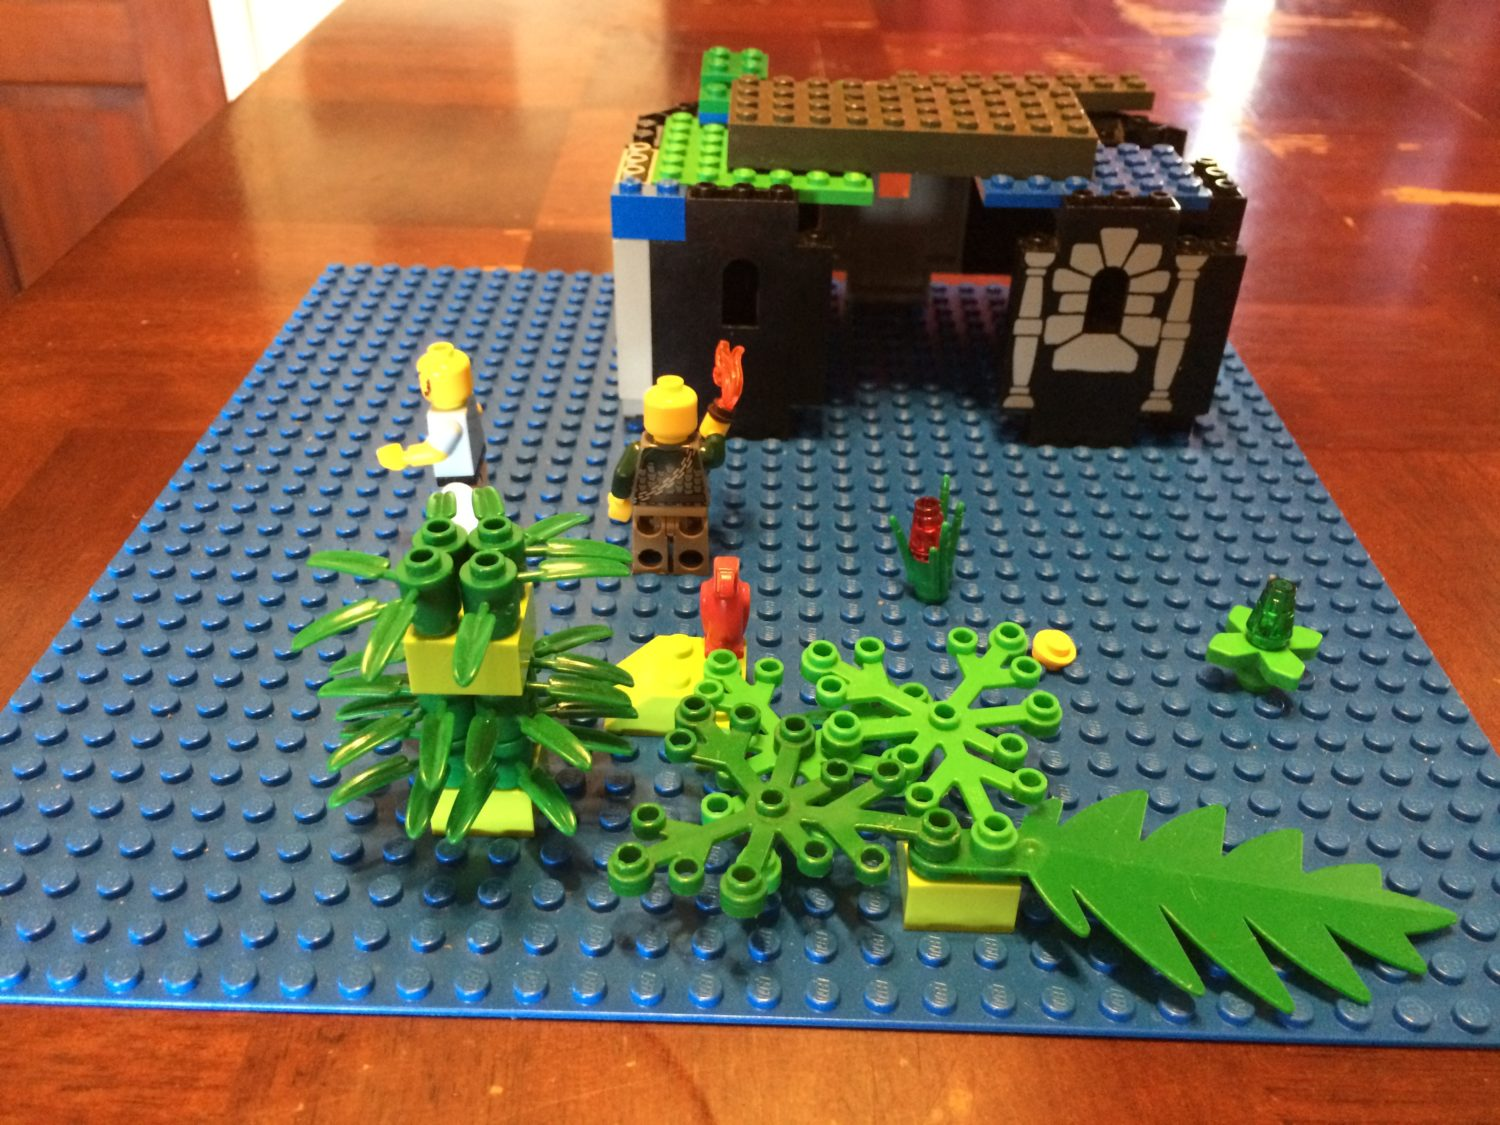 Lego Challenge: Build an Easter Scene